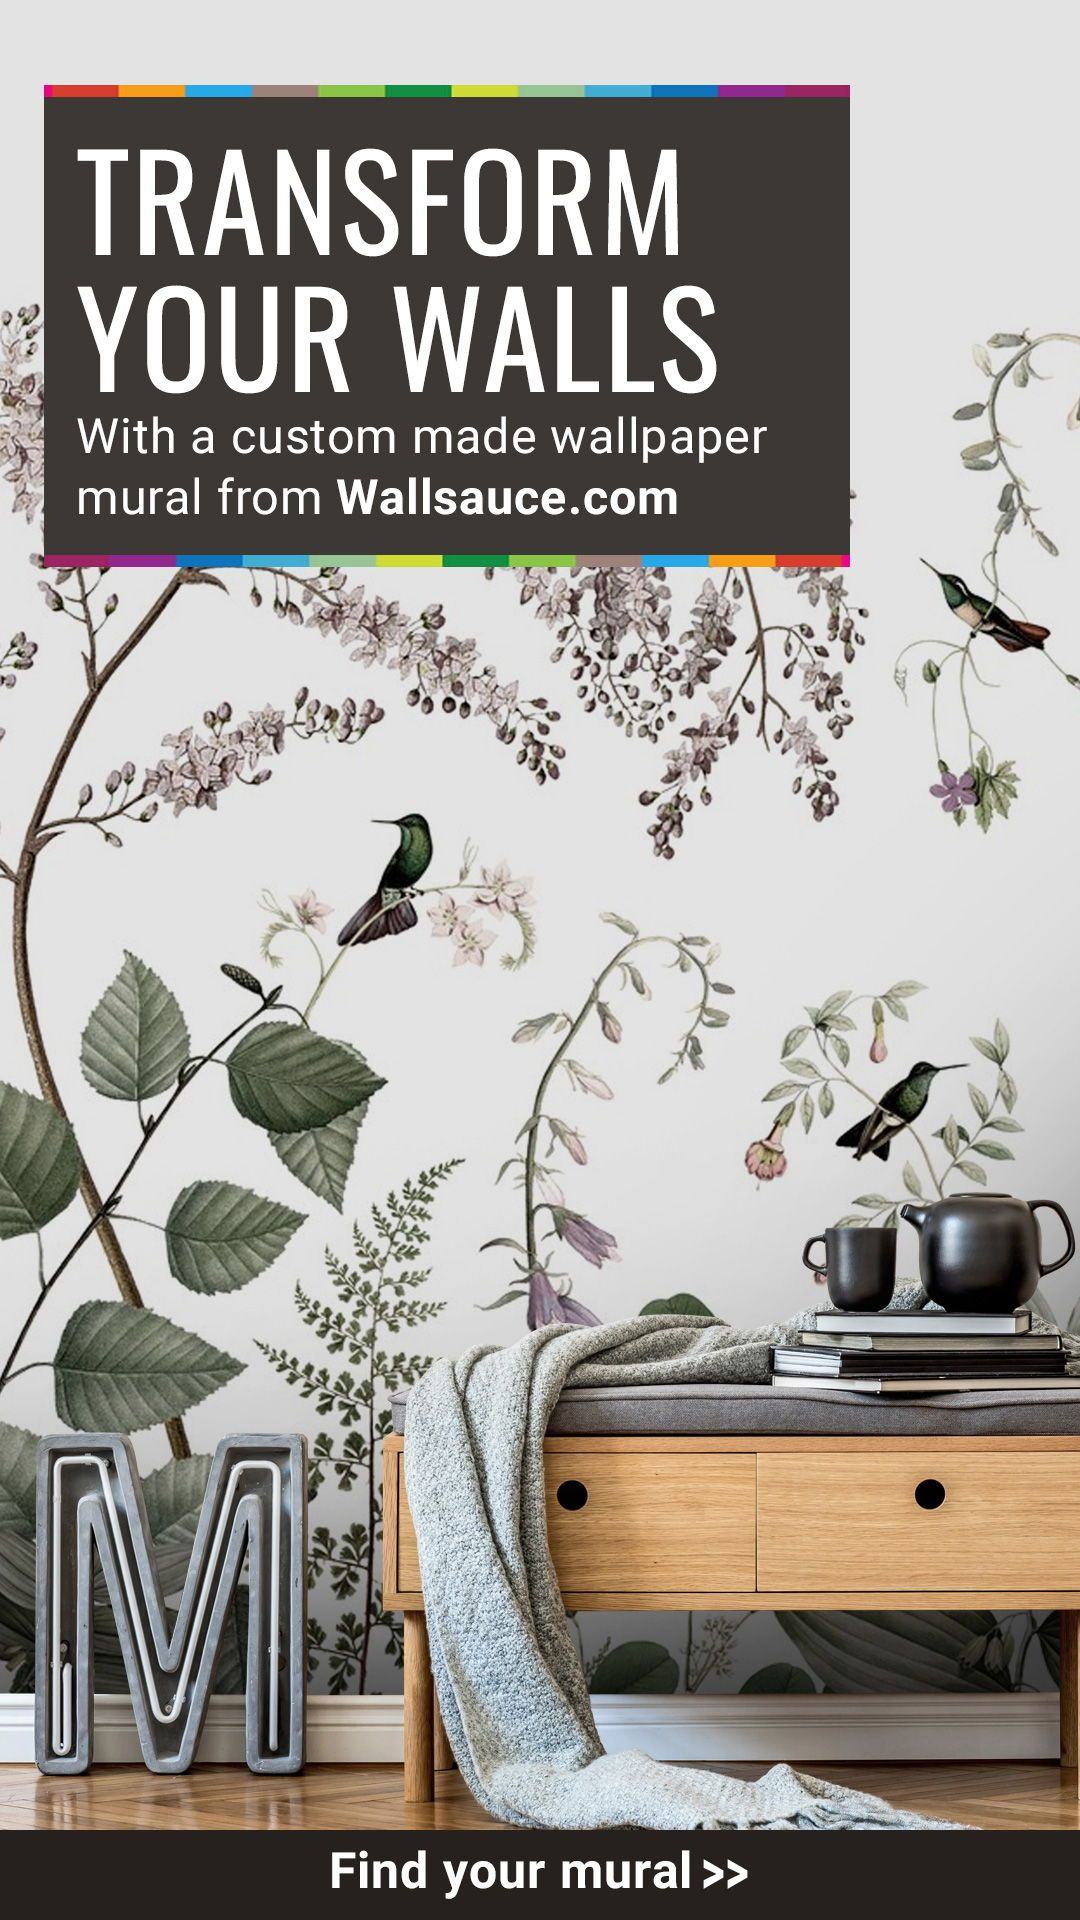 Looking To Create A Show Stopping Feature Wall Look No Further Mural Wallpaper Wall Coverings Wallpaper Living Room How to measure how much wallpaper you